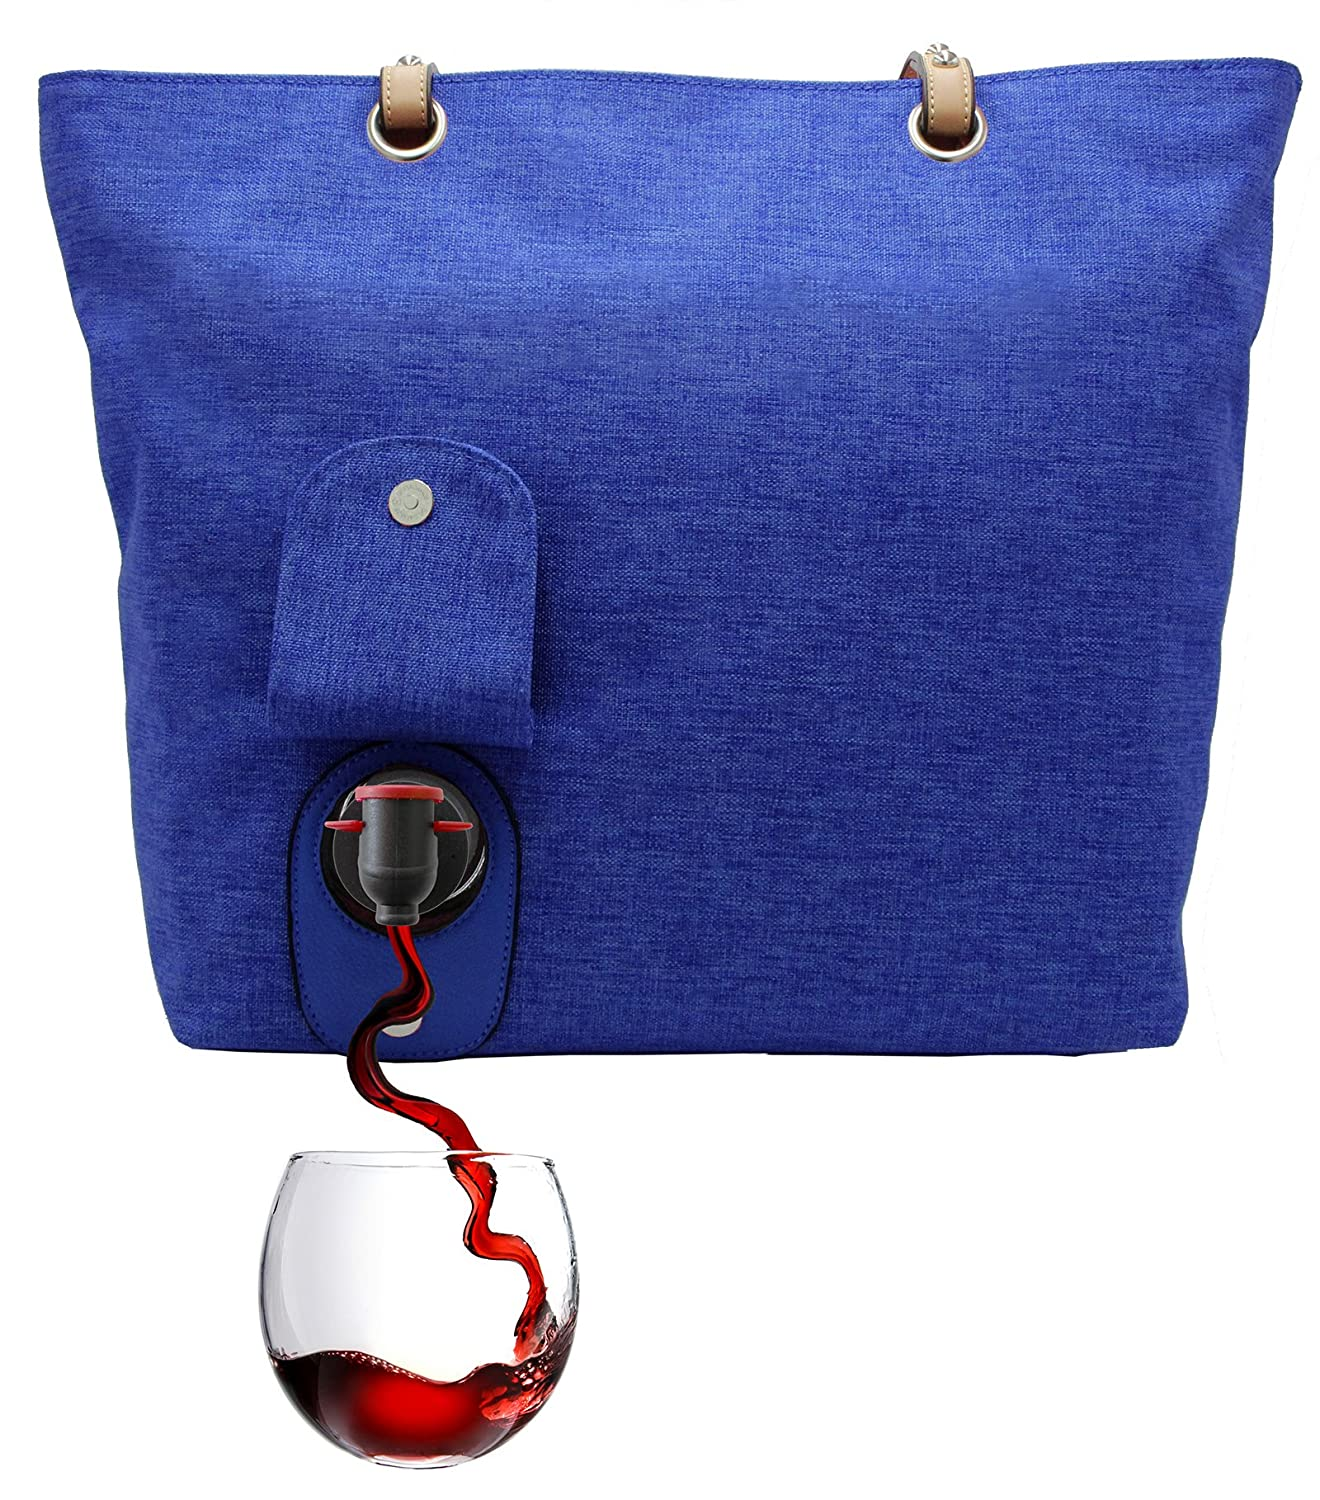 PortoVino City Tote Black - Fashionable Tote Hidden, Insulated Compartment, Holds 2 Bottles Wine! PortoVino®